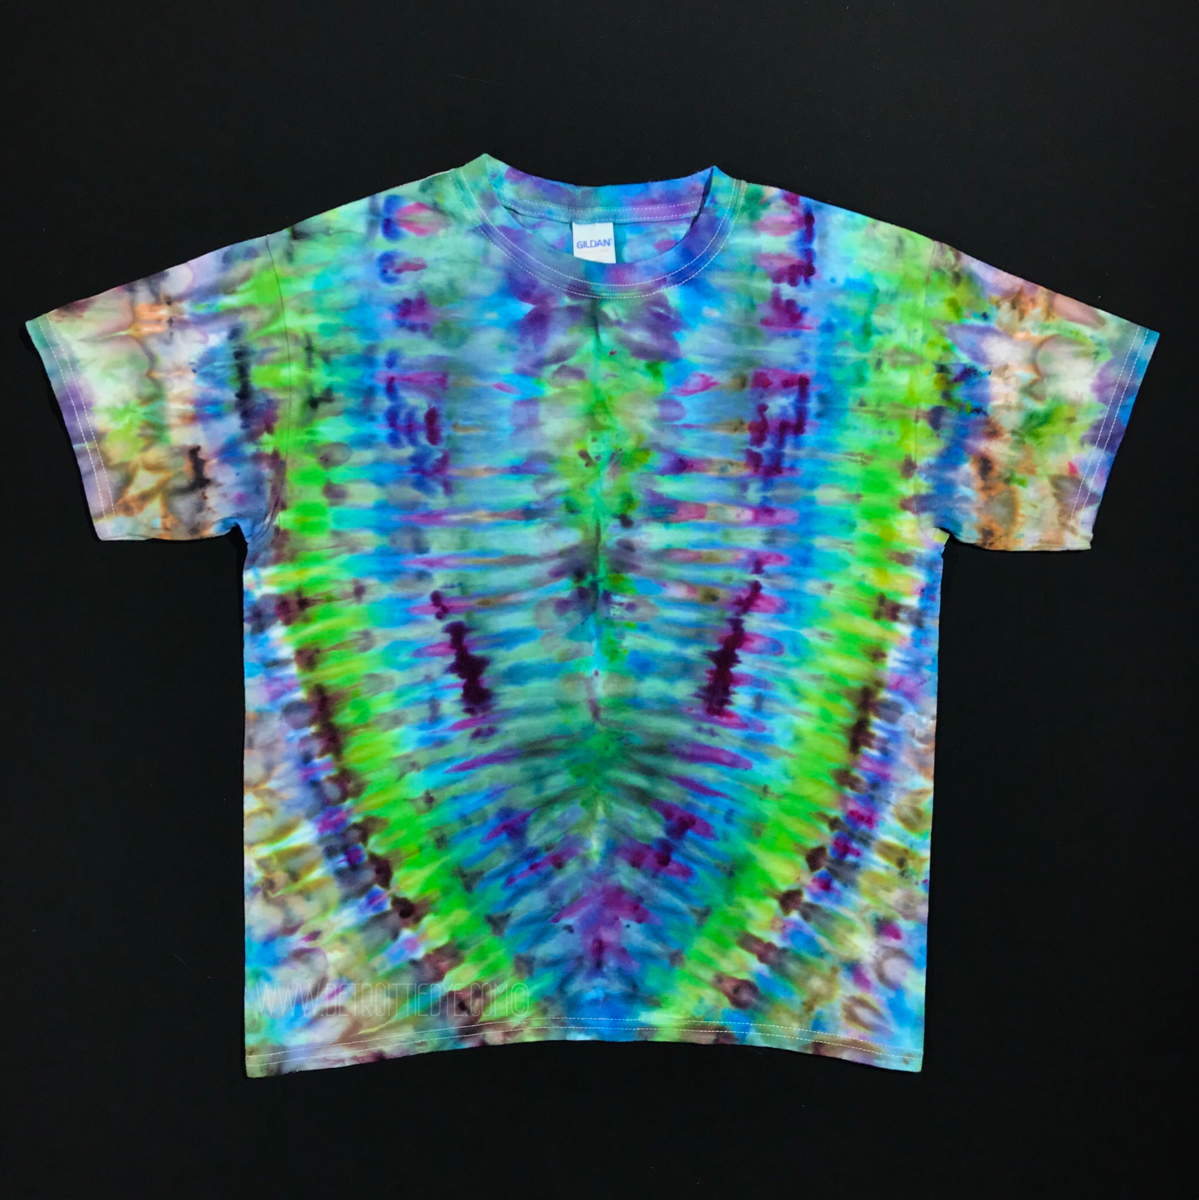 f32ebdca859b Size Youth Large Tie Dye Shirt • Psychedelic Symmetry Ice Dye Design –  DetroitTieDyeCo.